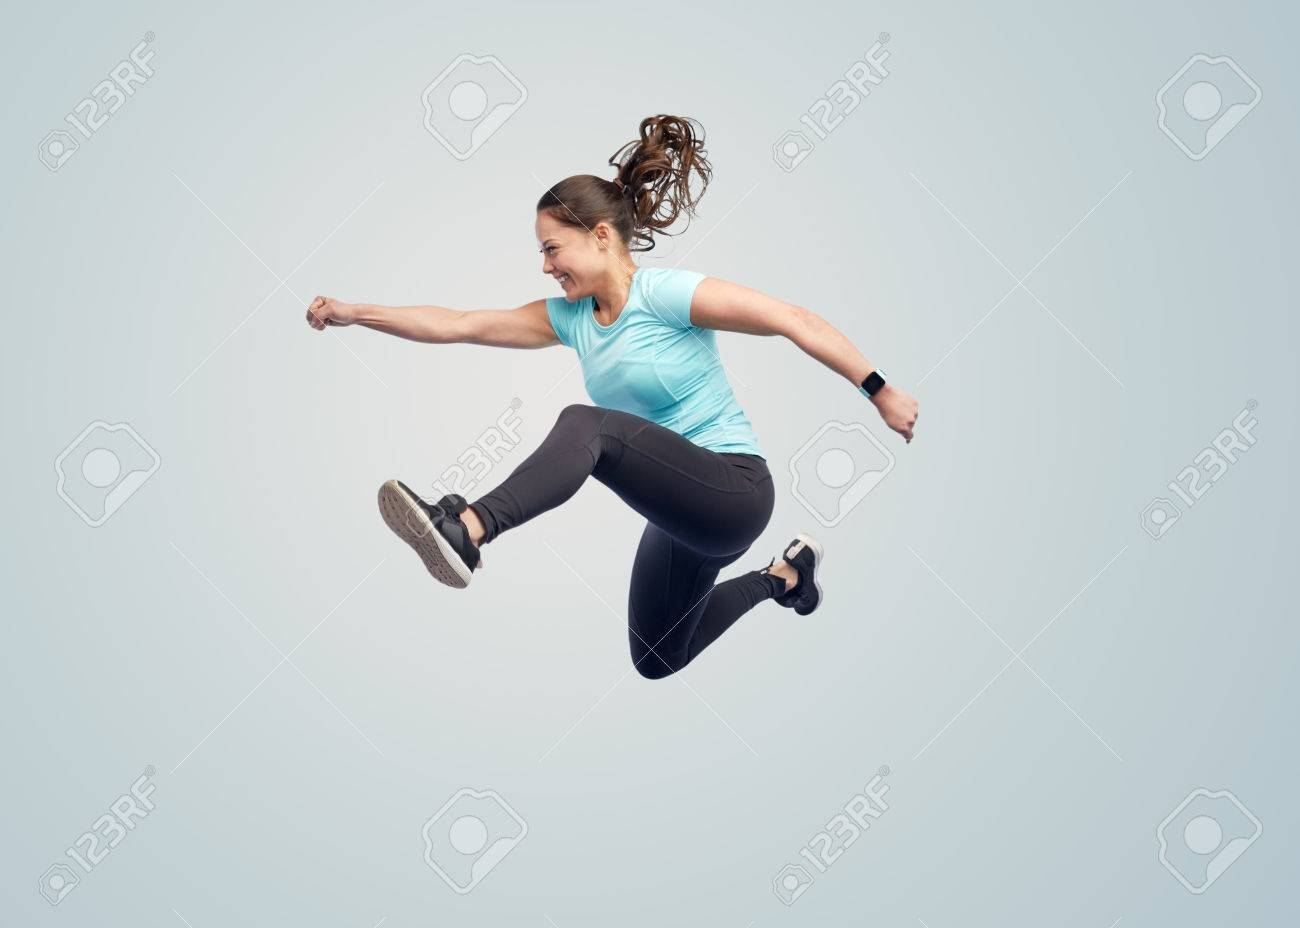 sport, fitness, motion and people concept - happy smiling young woman jumping in air over blue background Standard-Bild - 72277645